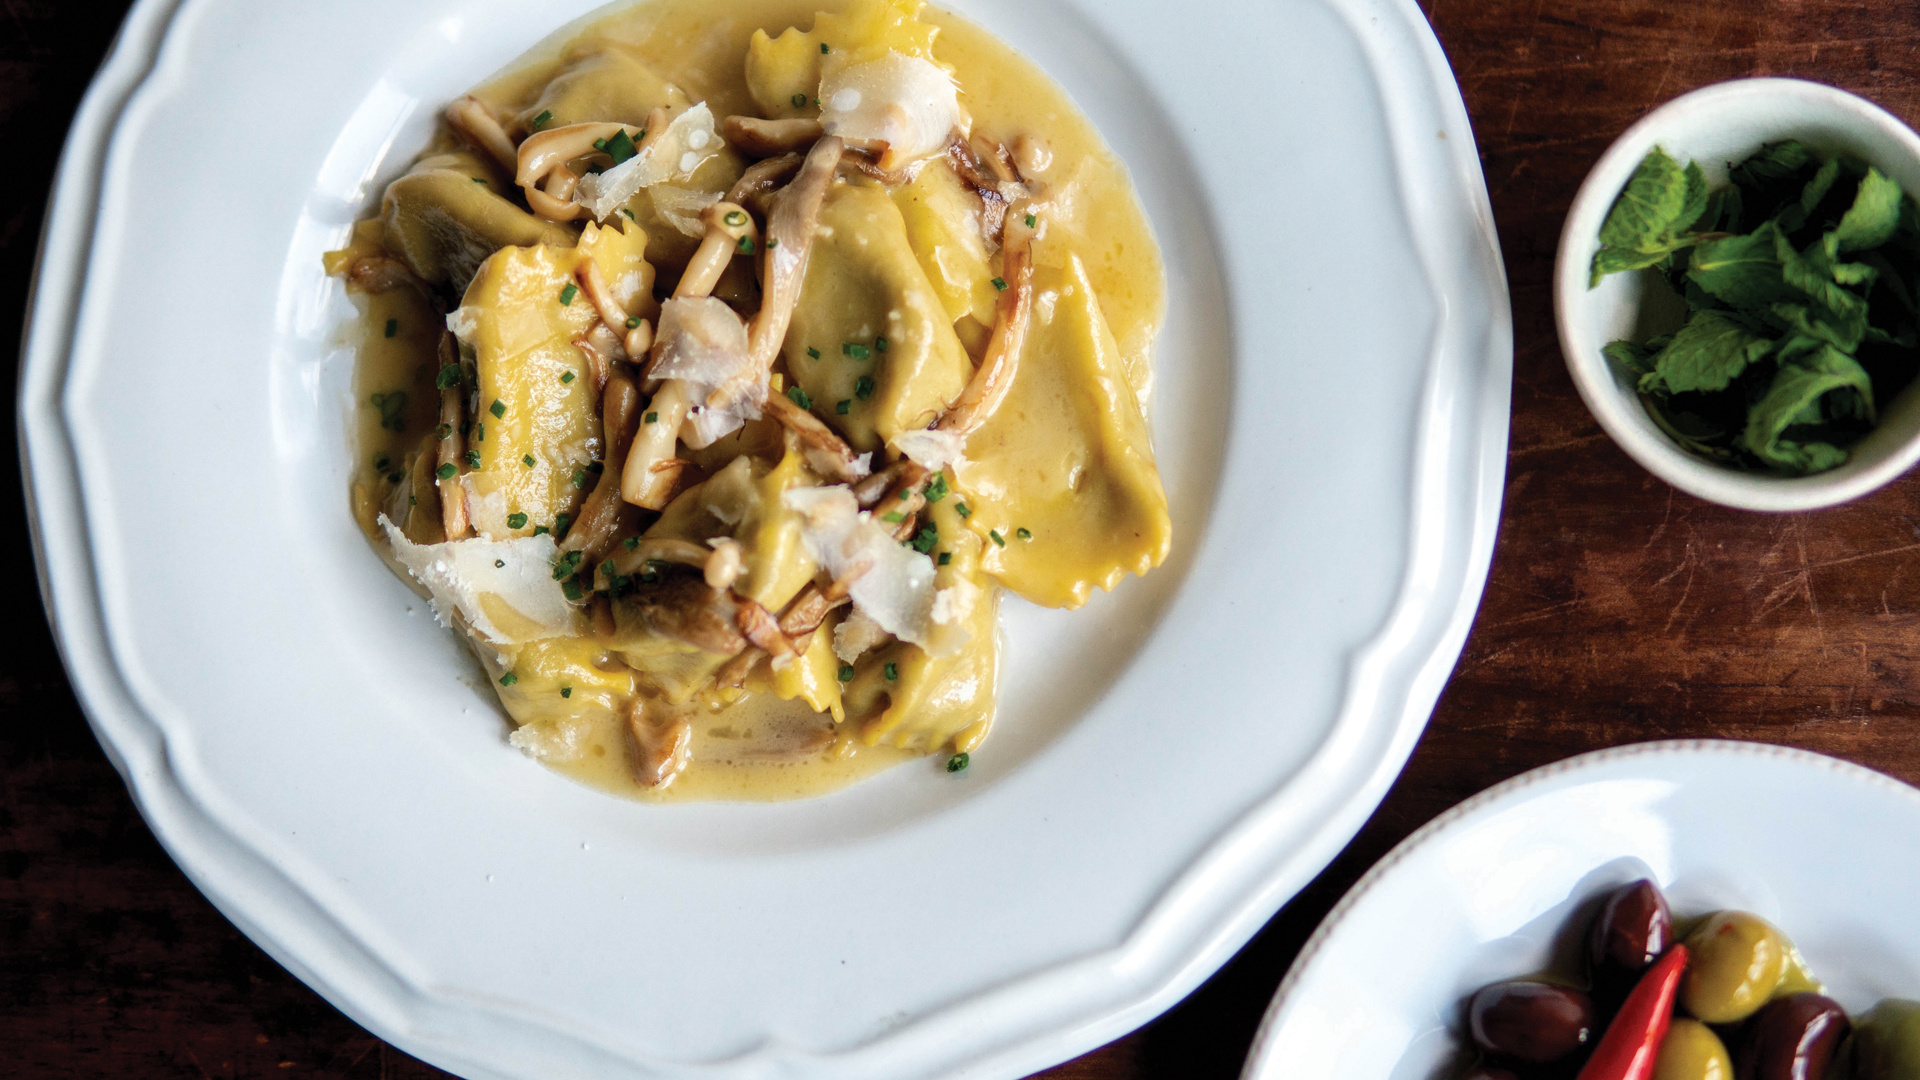 The best Italian restaurants in Toronto for pasta | Mushroom agnolotti at Ufficio